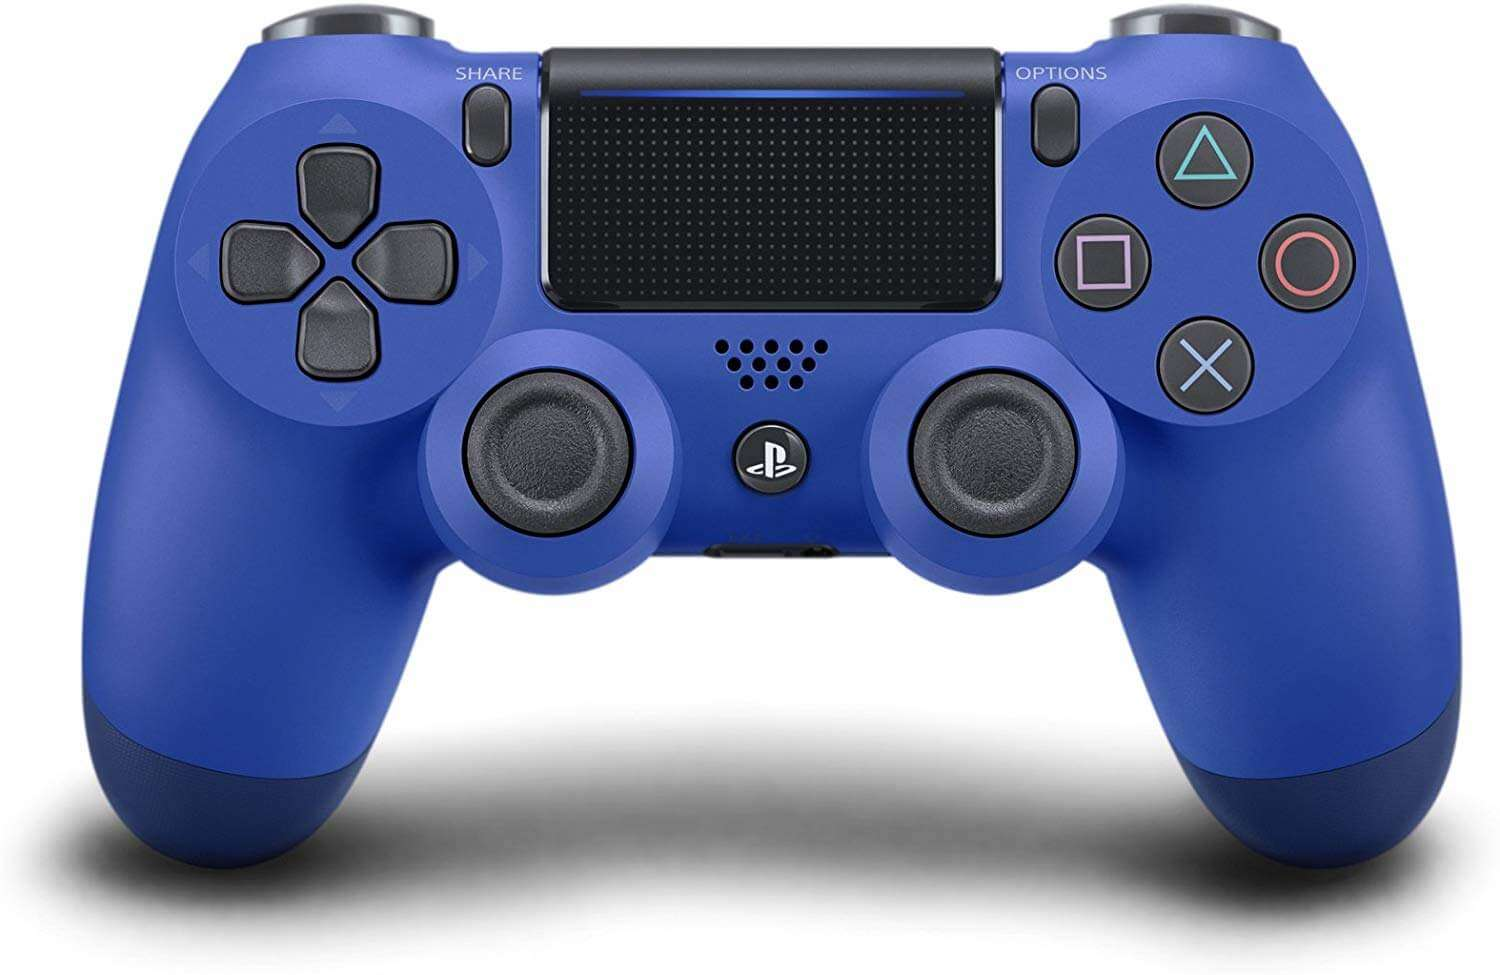 Sony DualShock 4 Wireless Controller For PlayStation 4 - Blue